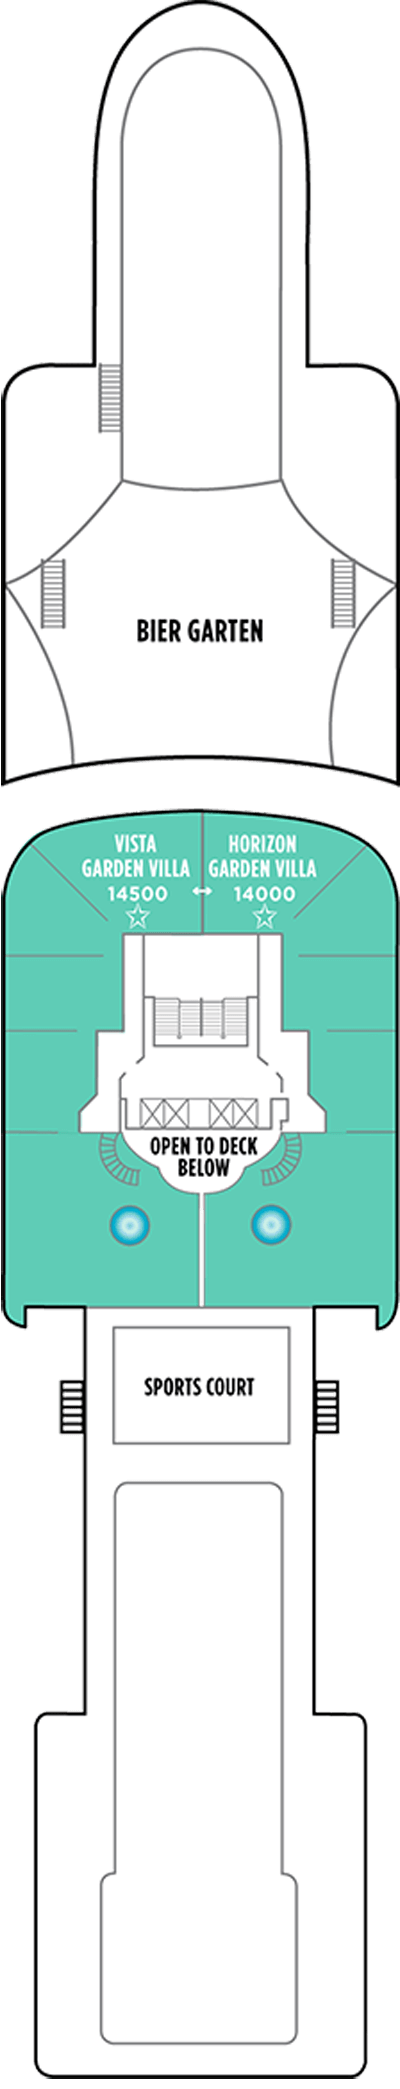 Norwegian Star Deck 14aft layout